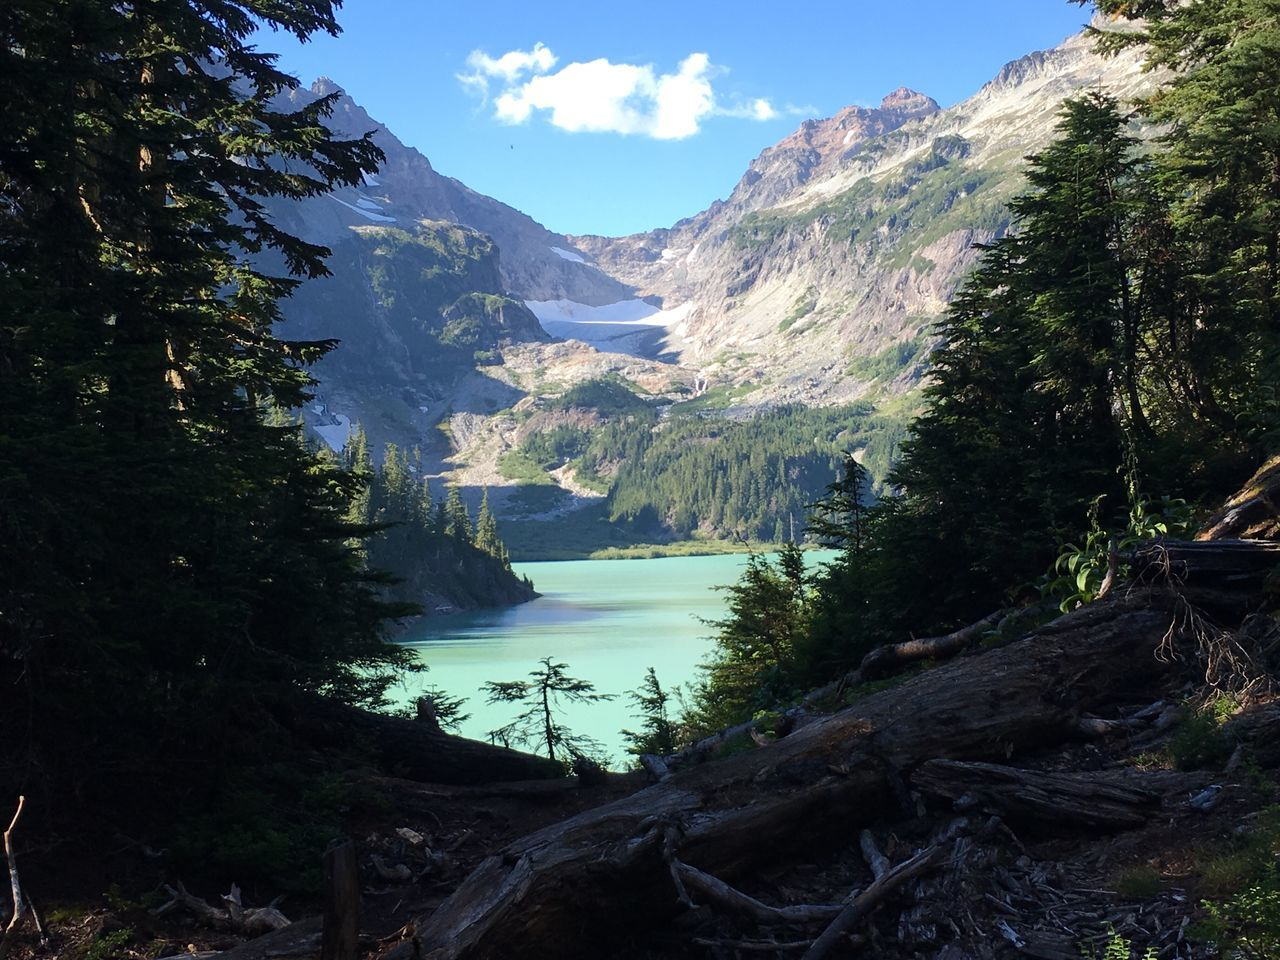 Blancalake Blanca Lake Lake Iphonephotography Beauty In Nature Washington USA Plants Daytrip Nature Collection Nature Photography Green Color Green Day Hiking Trail Freshness Water Turquoise Water Turquoise Turquoise Colored Beautiful View Hiking Hikingadventures Miles Away The Great Outdoors - 2017 EyeEm Awards The Great Outdoors - 2017 EyeEm Awards